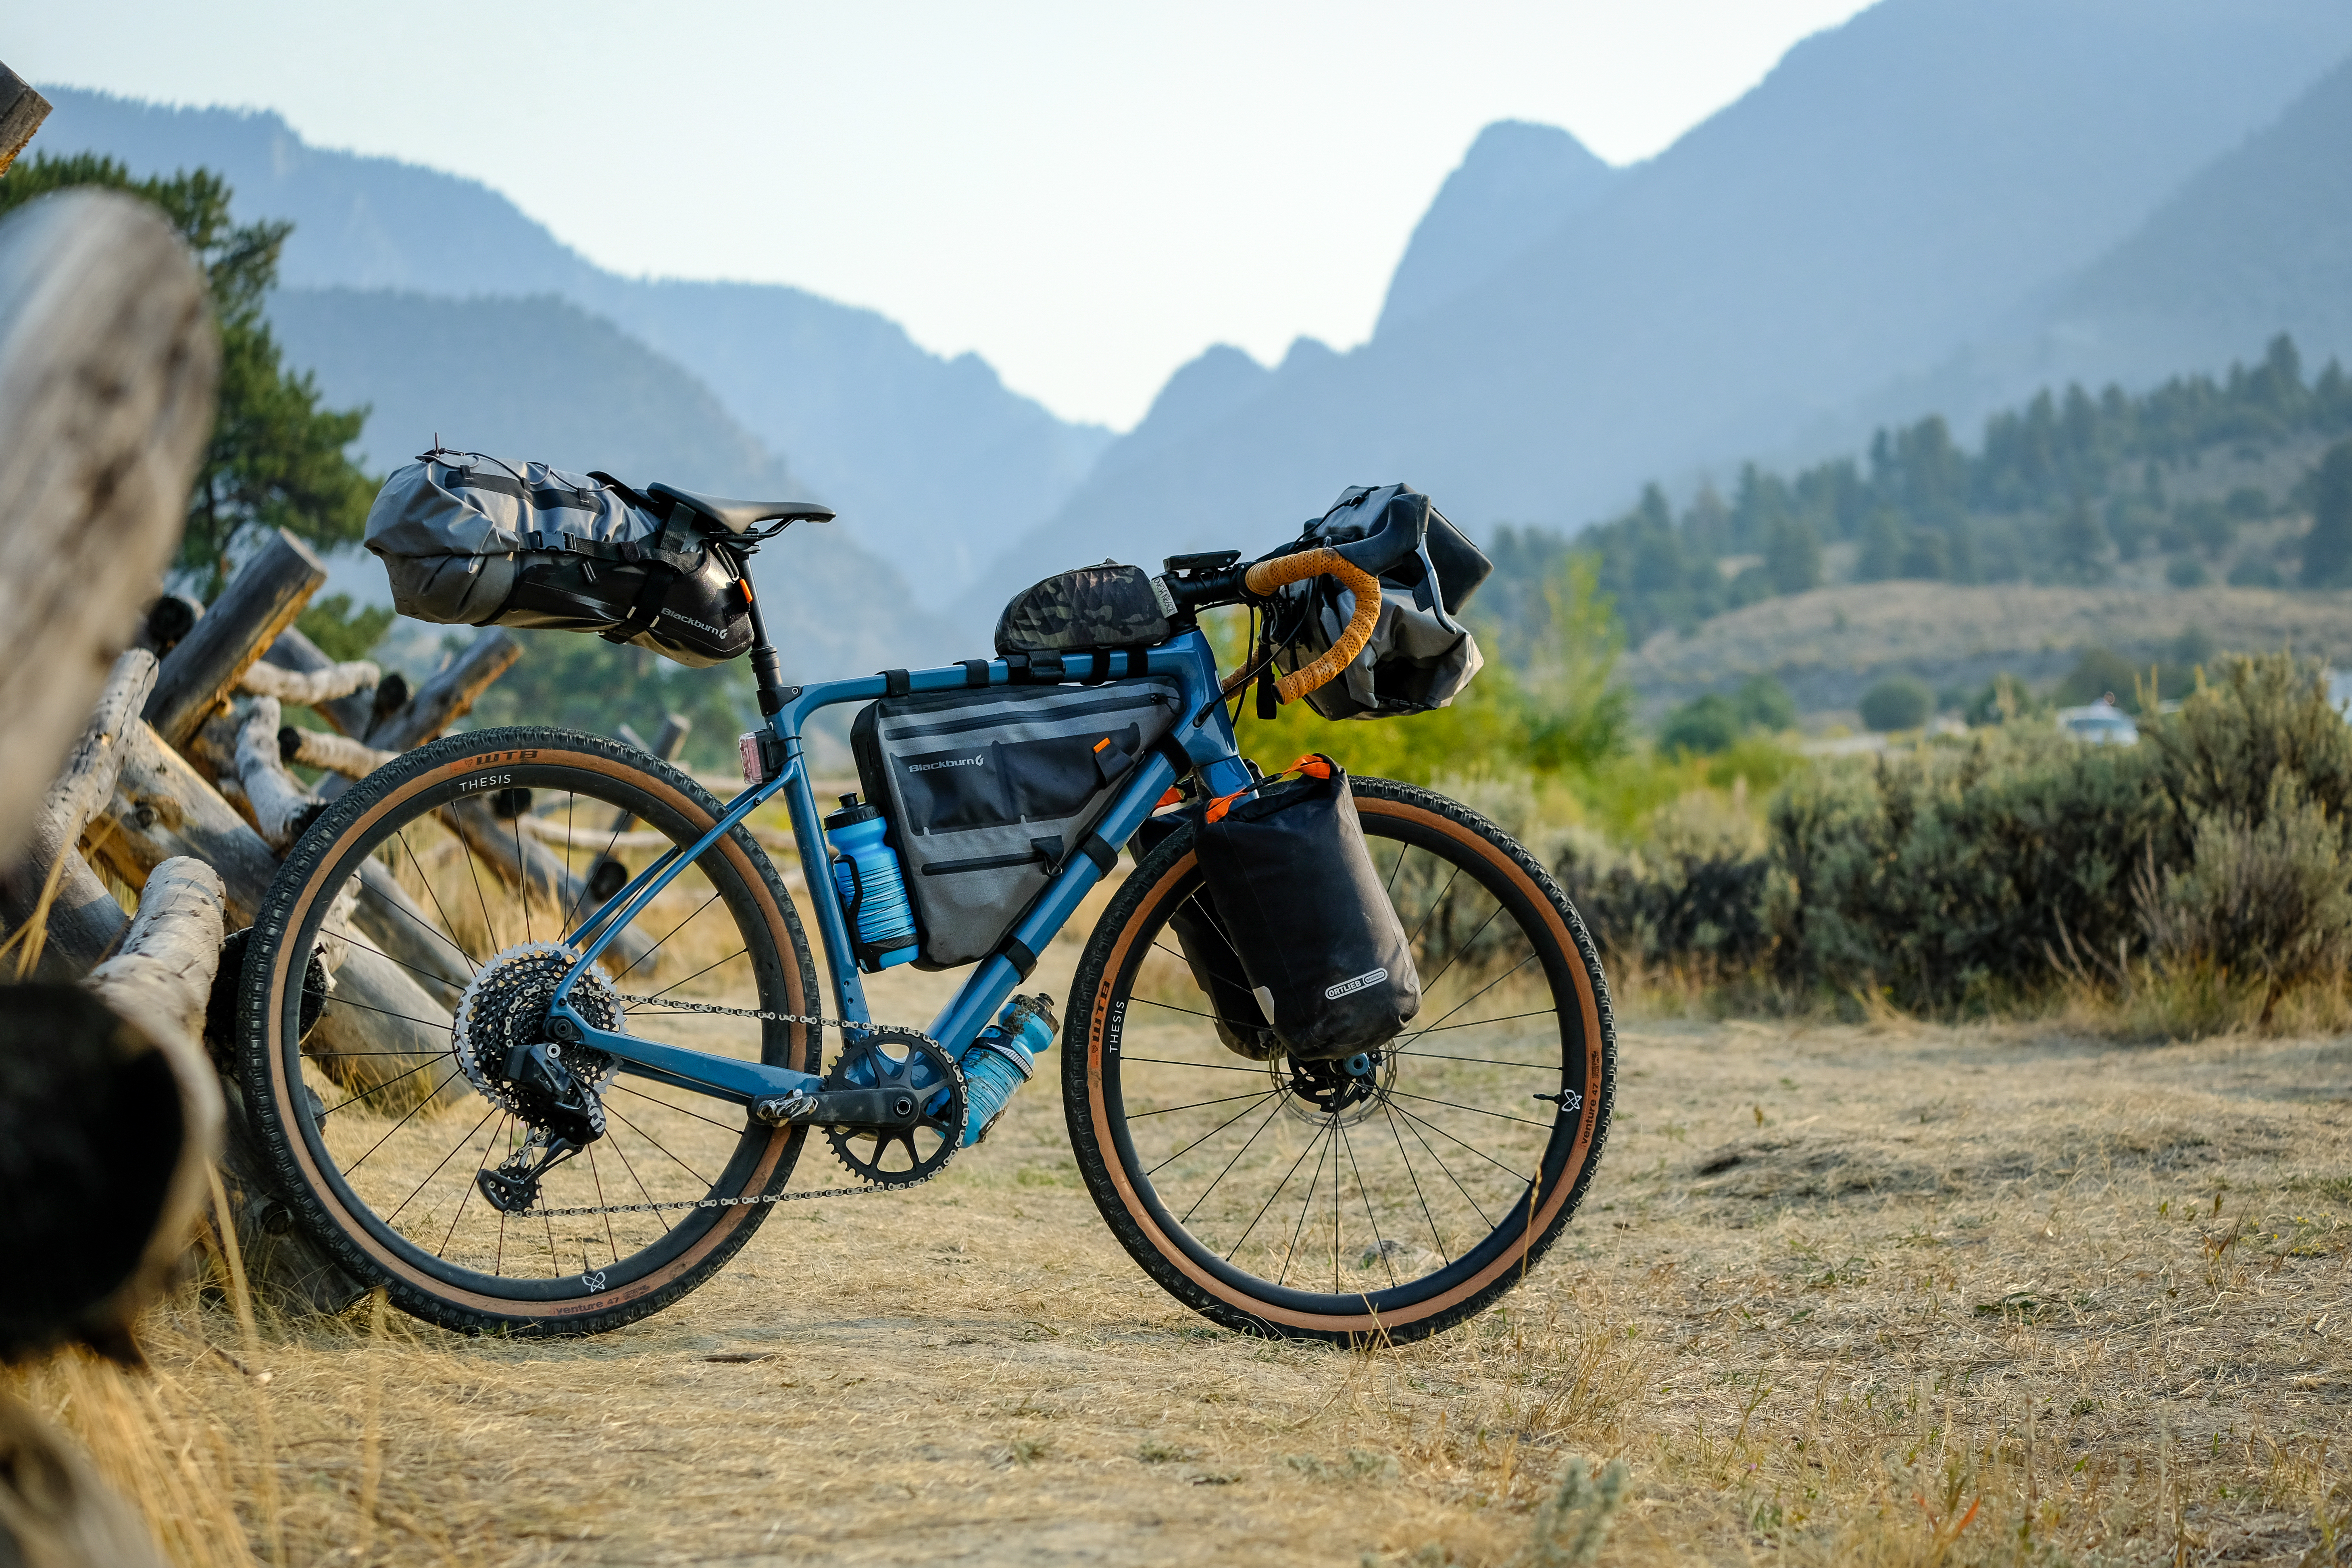 Thesis bike with bikepacking bags